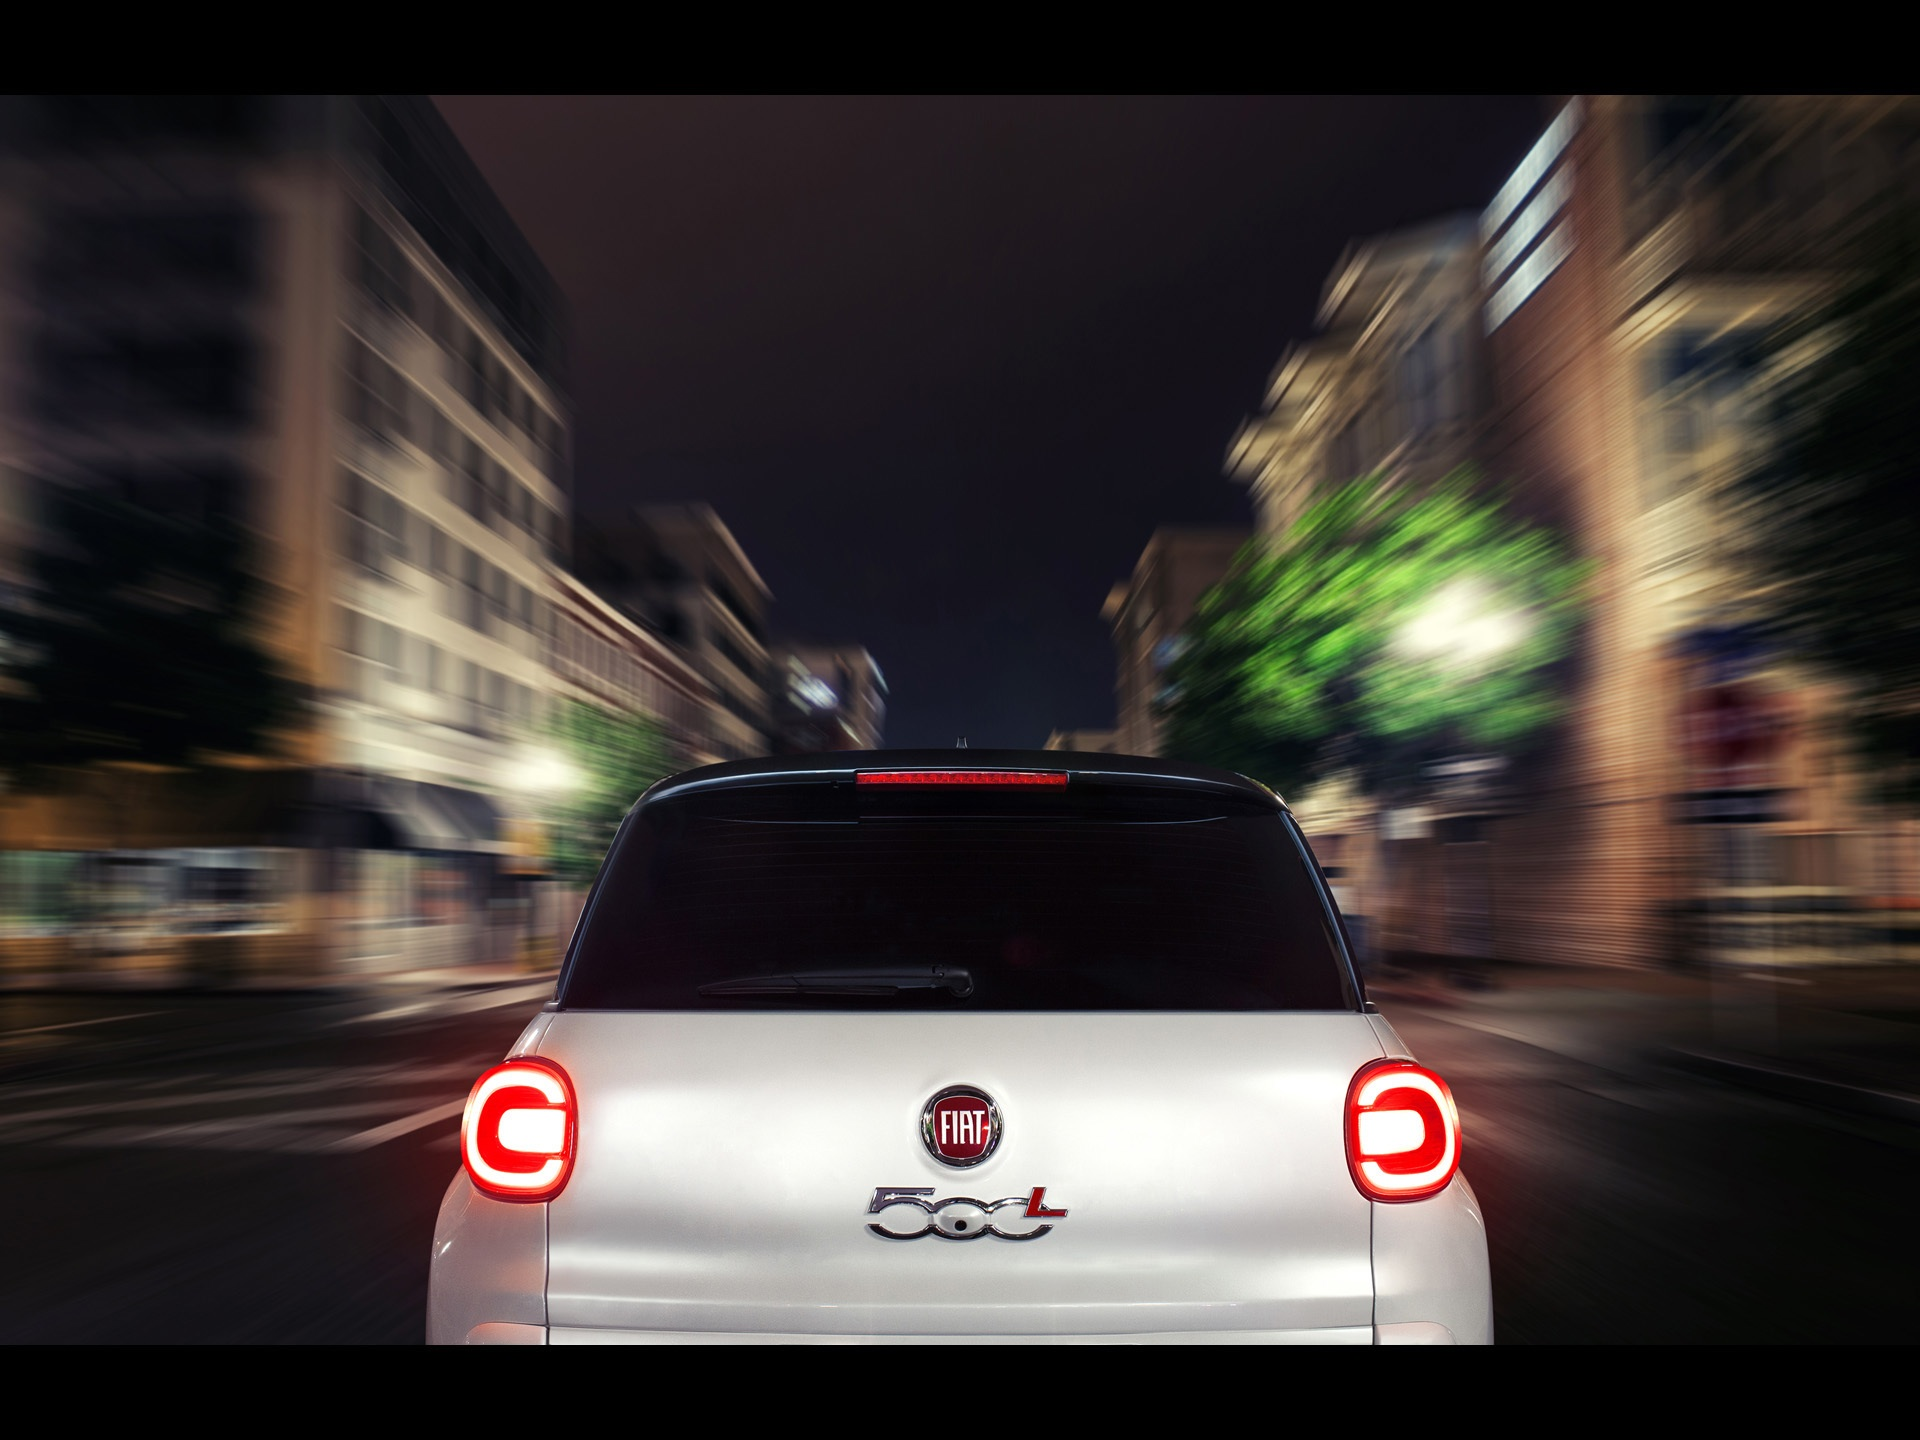 fiat punto racing html with 2014 Fiat 500l Rear Motion At Night Wallpapers W35490 on 173793 My White Gps likewise 173793 My White Gps in addition Fiat Panda 100 Hp in addition Seicento Swap 1368 16v Poland additionally Delta Plastik Adesivi Carrozzeria Fiat Grande Punto Rally Pi 3854.